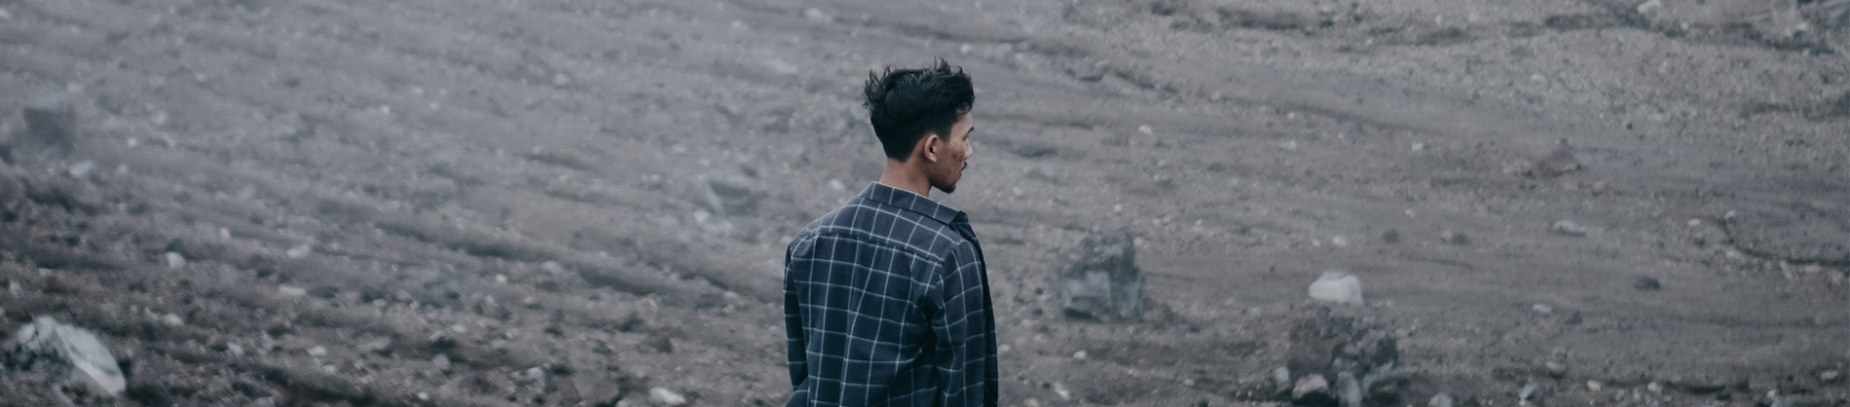 A guy stood in a rocky wasteland